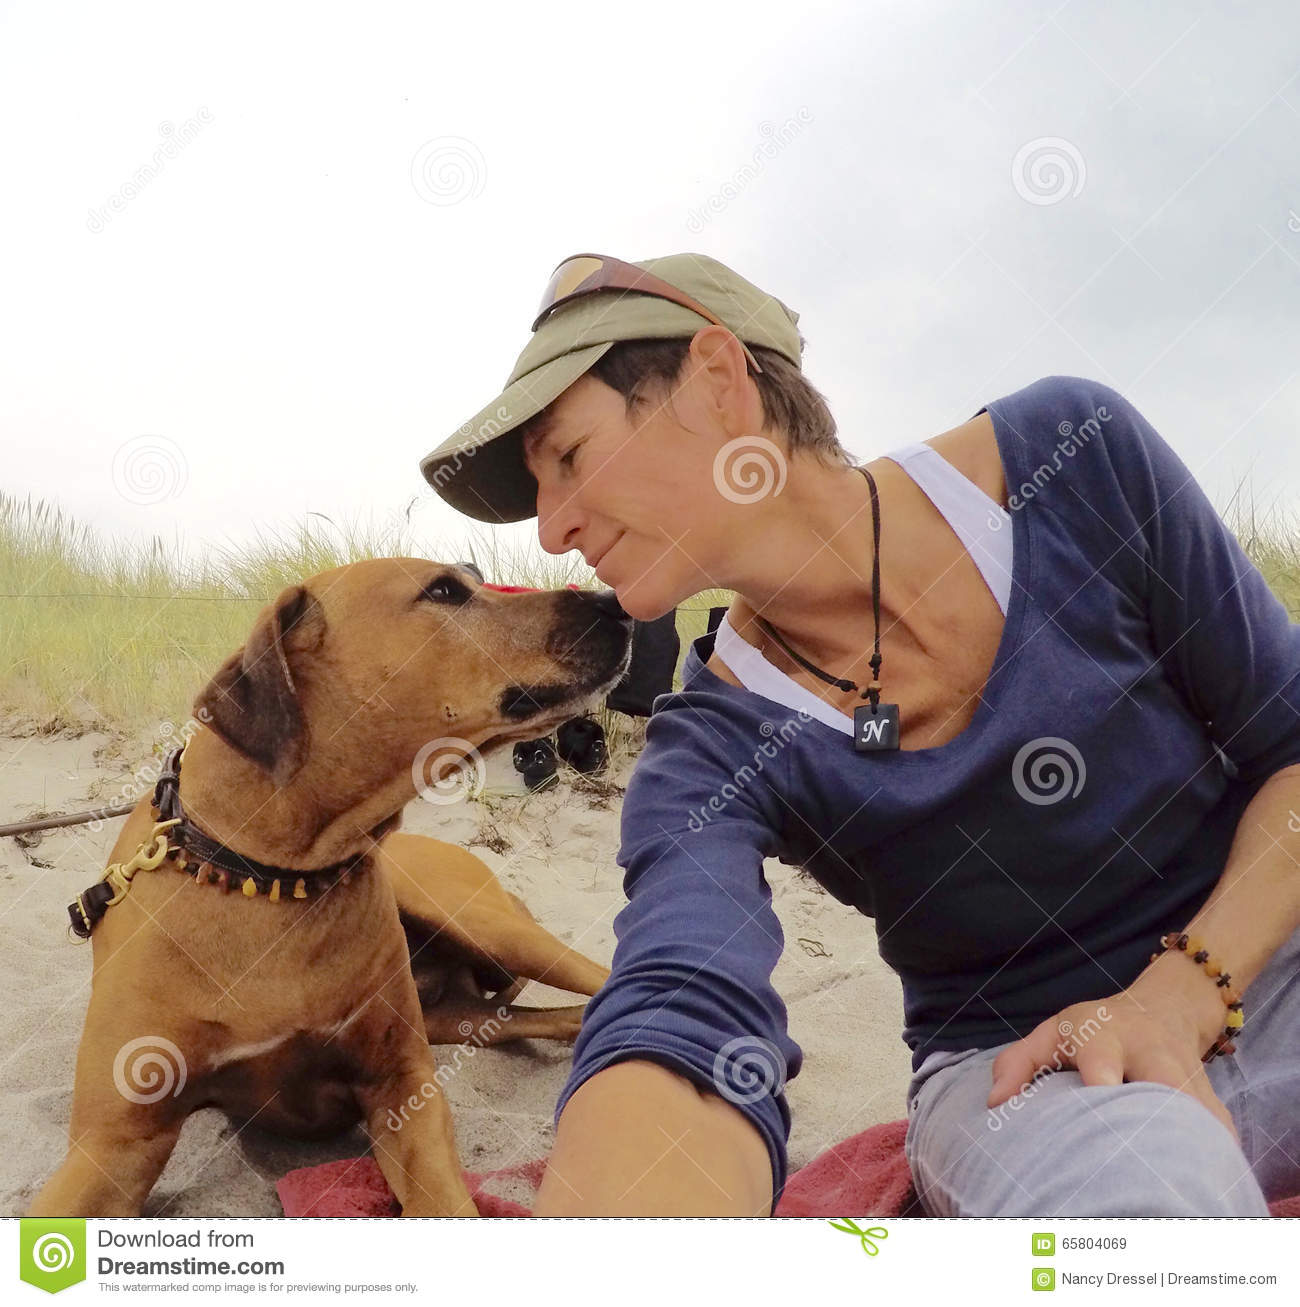 My dog and me on the beach